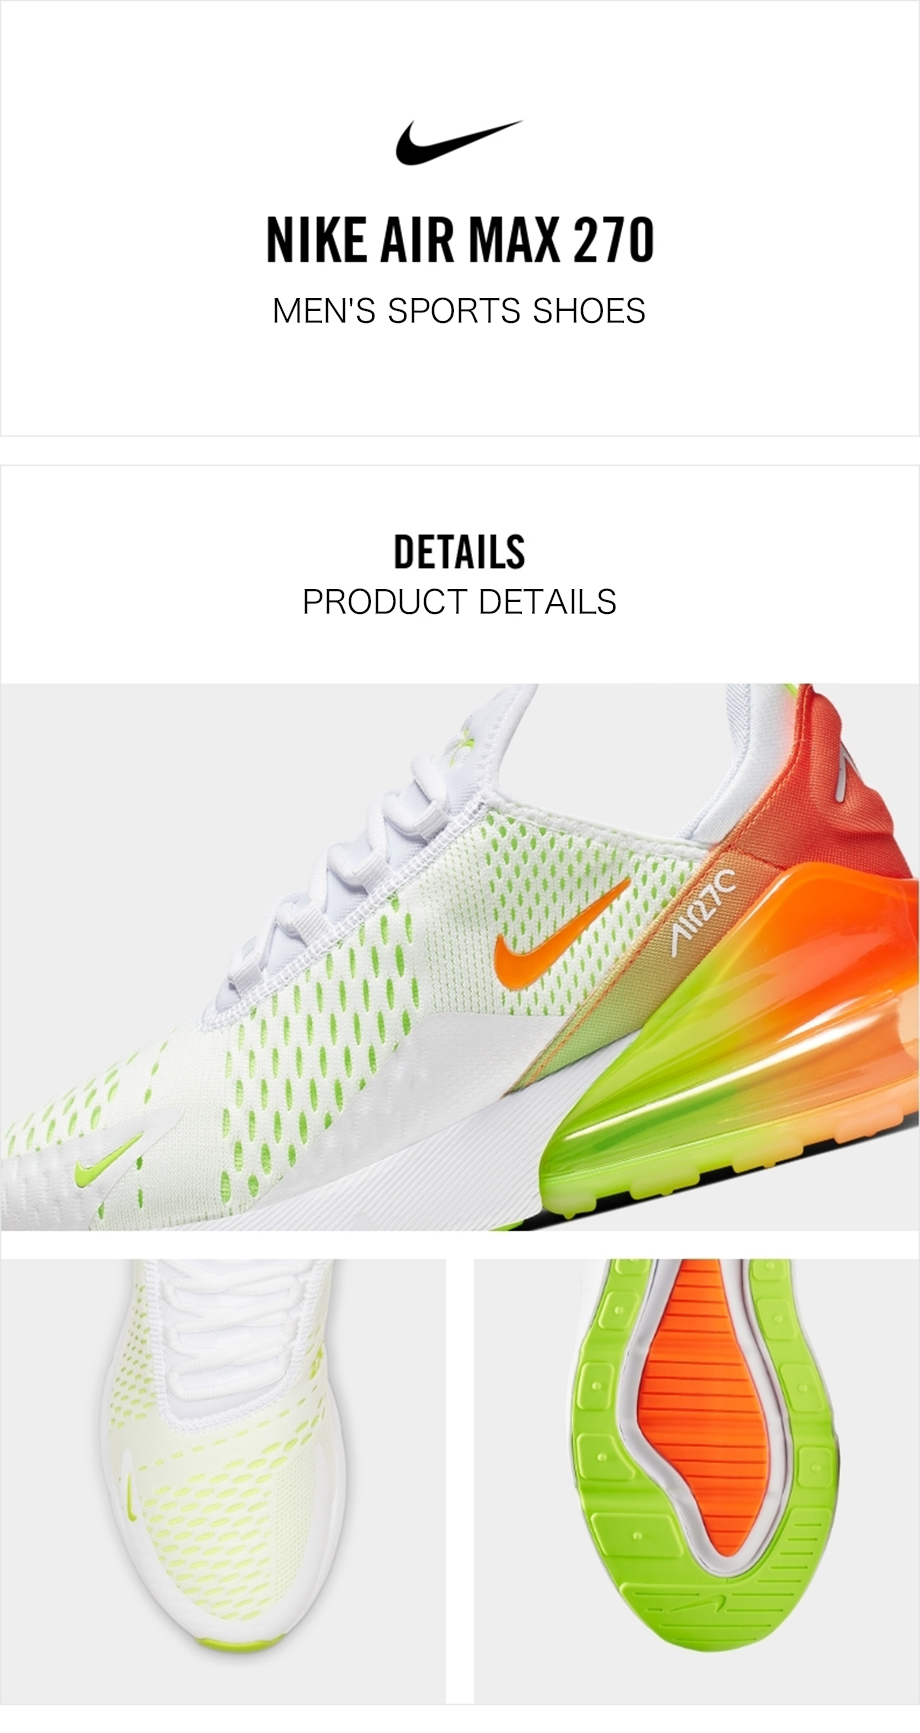 US $75.6 60% OFF|Original Authentic Nike Air Max 270 Men's Running Shoes Outdoor Sports Shoes Designer Shoes Fashion New Listing CN7077 181 on